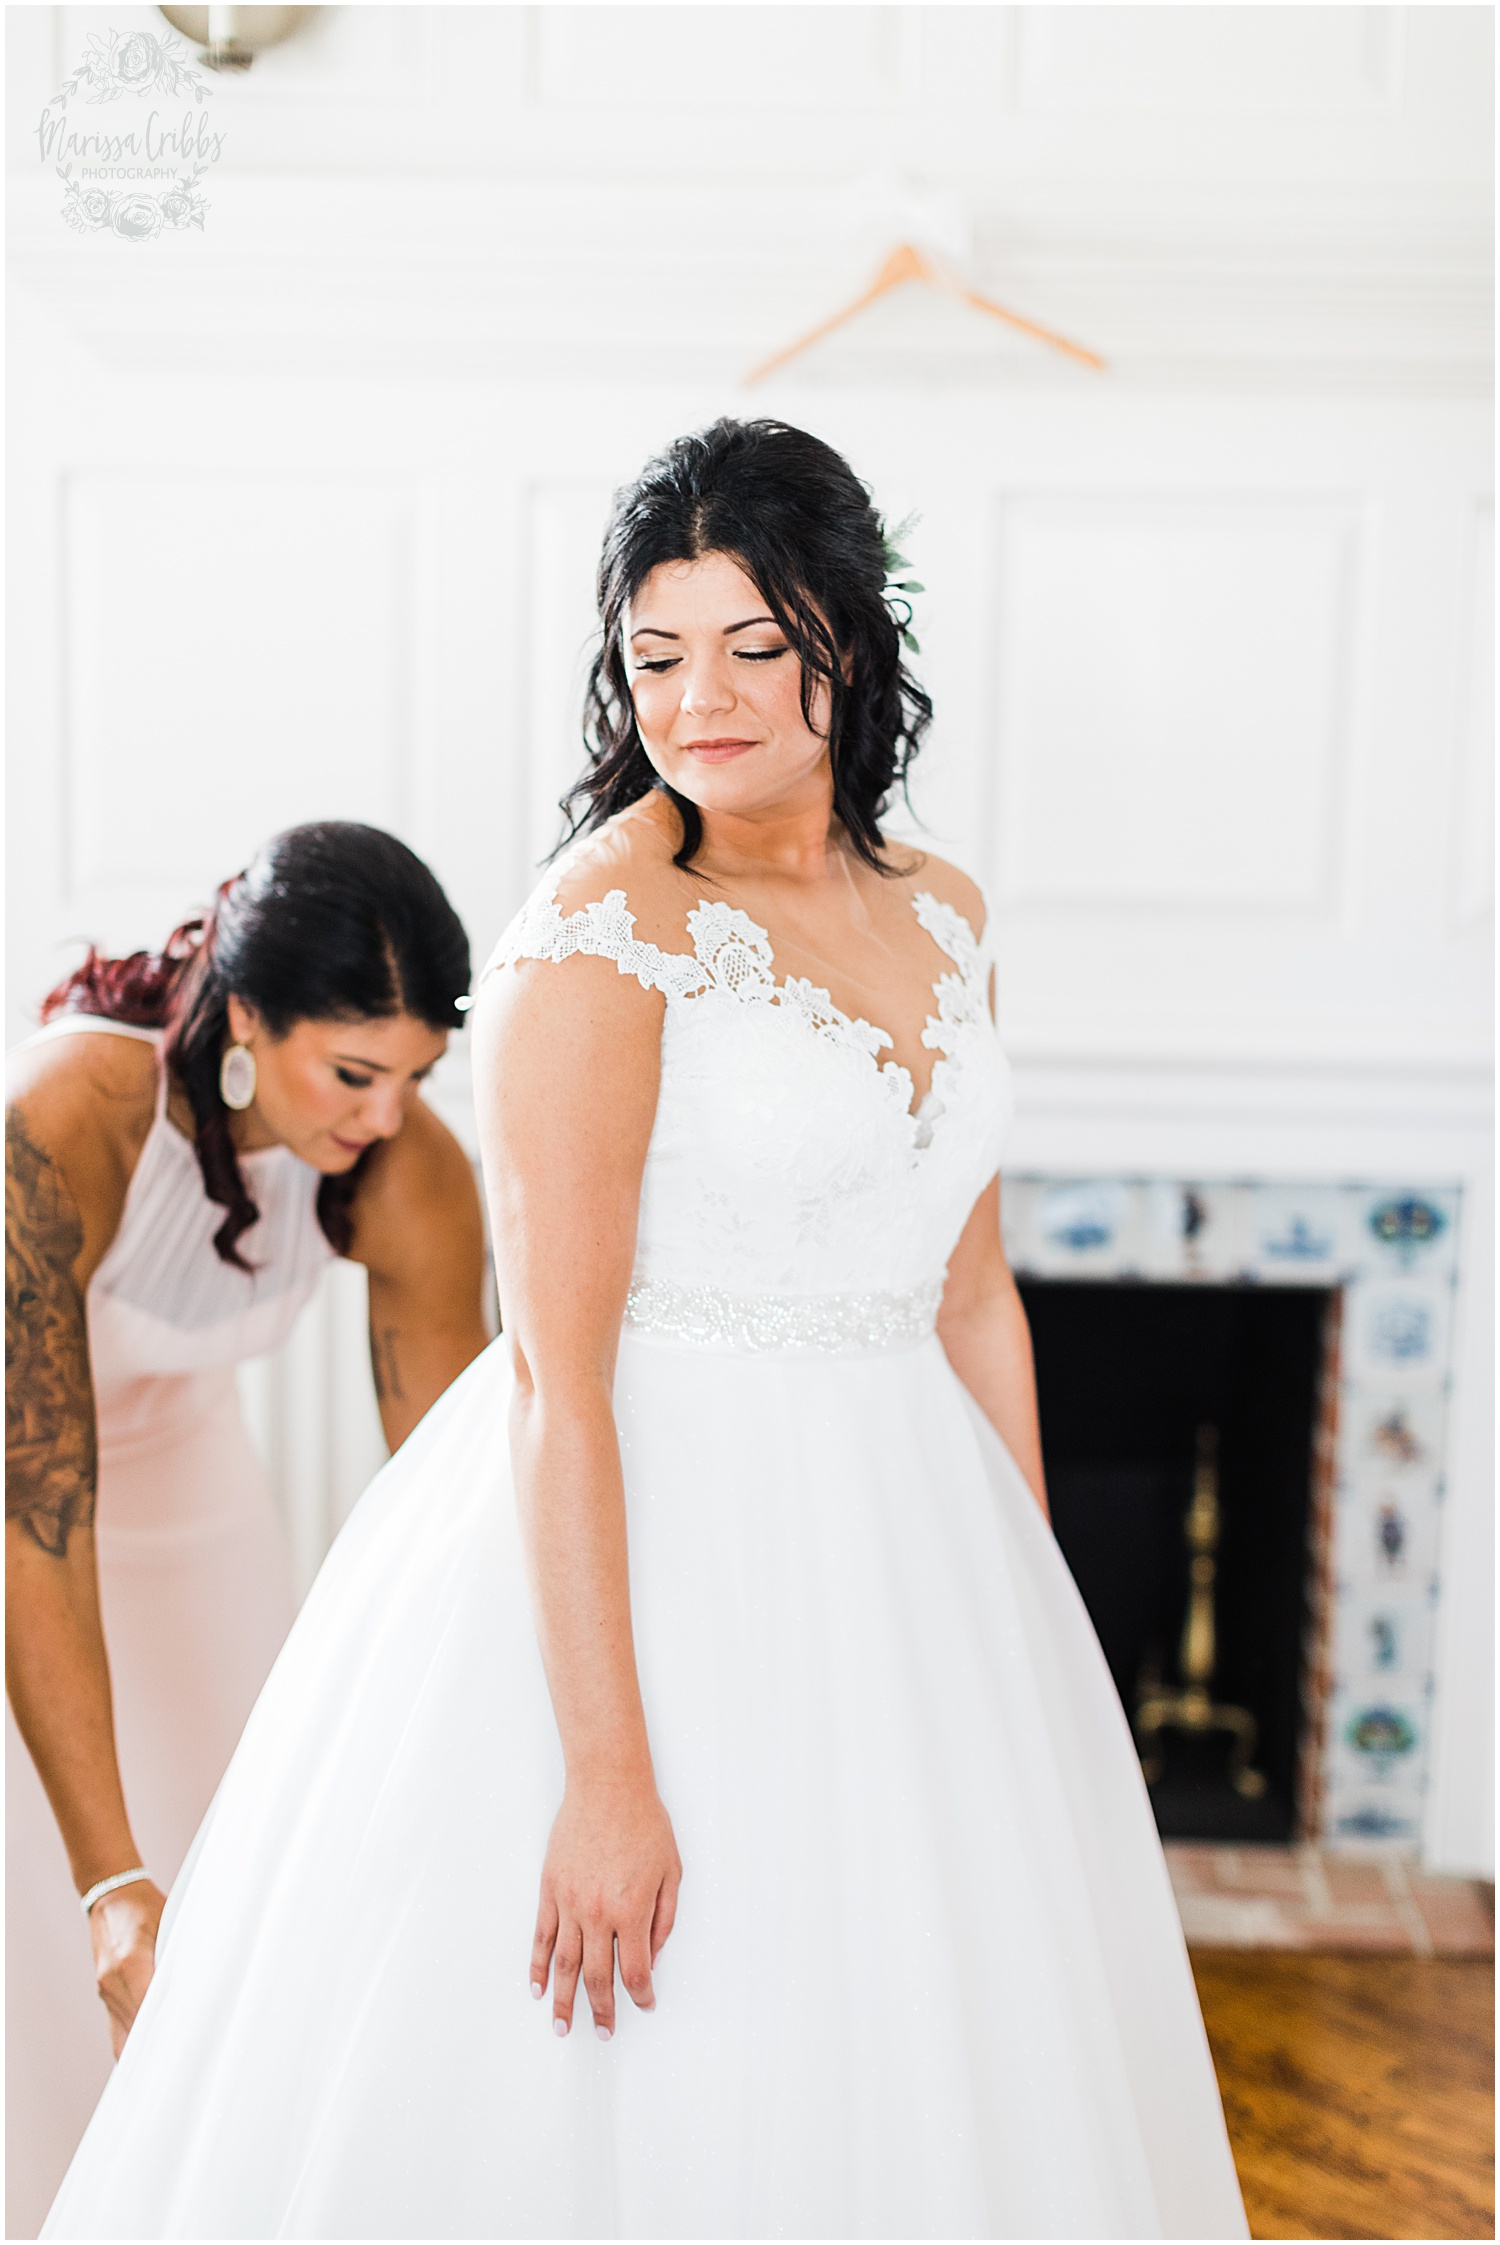 CASEY & GOLDIE MARRIED BLOG | MARISSA CRIBBS PHOTOGRAPHY_7968.jpg